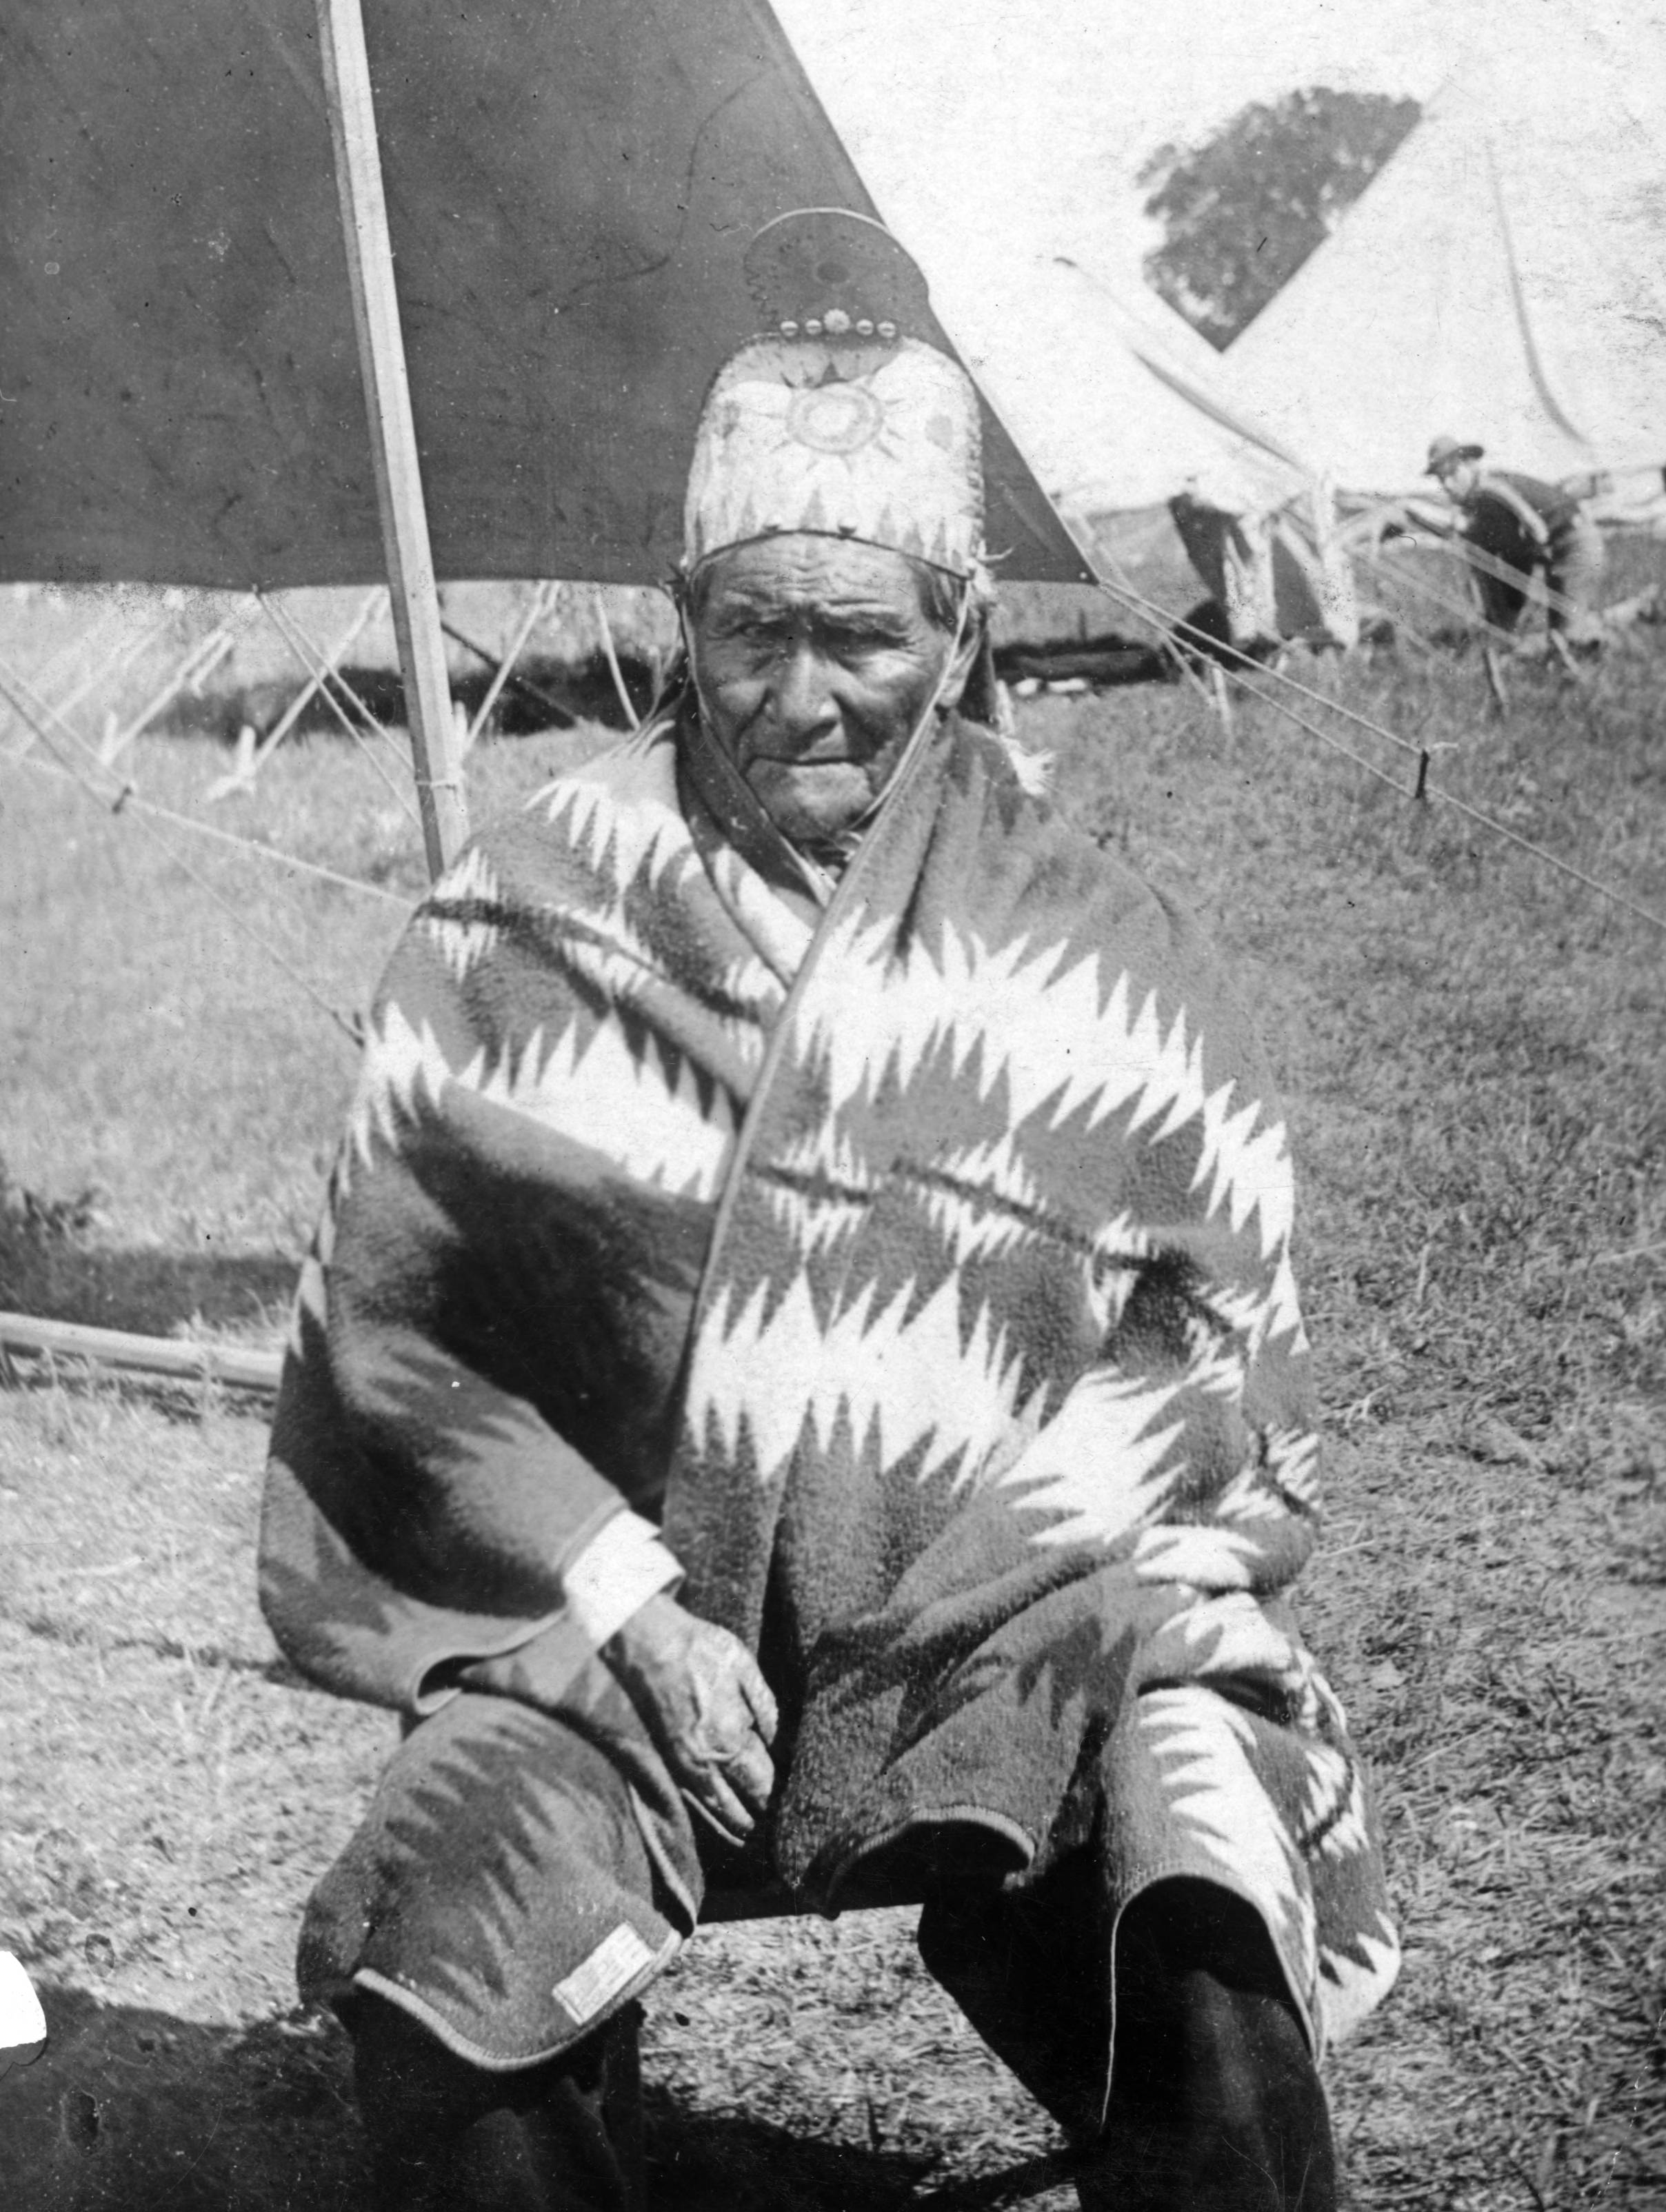 https://i0.wp.com/upload.wikimedia.org/wikipedia/commons/3/36/Geronimo%2C_as_US_prisoner.jpg